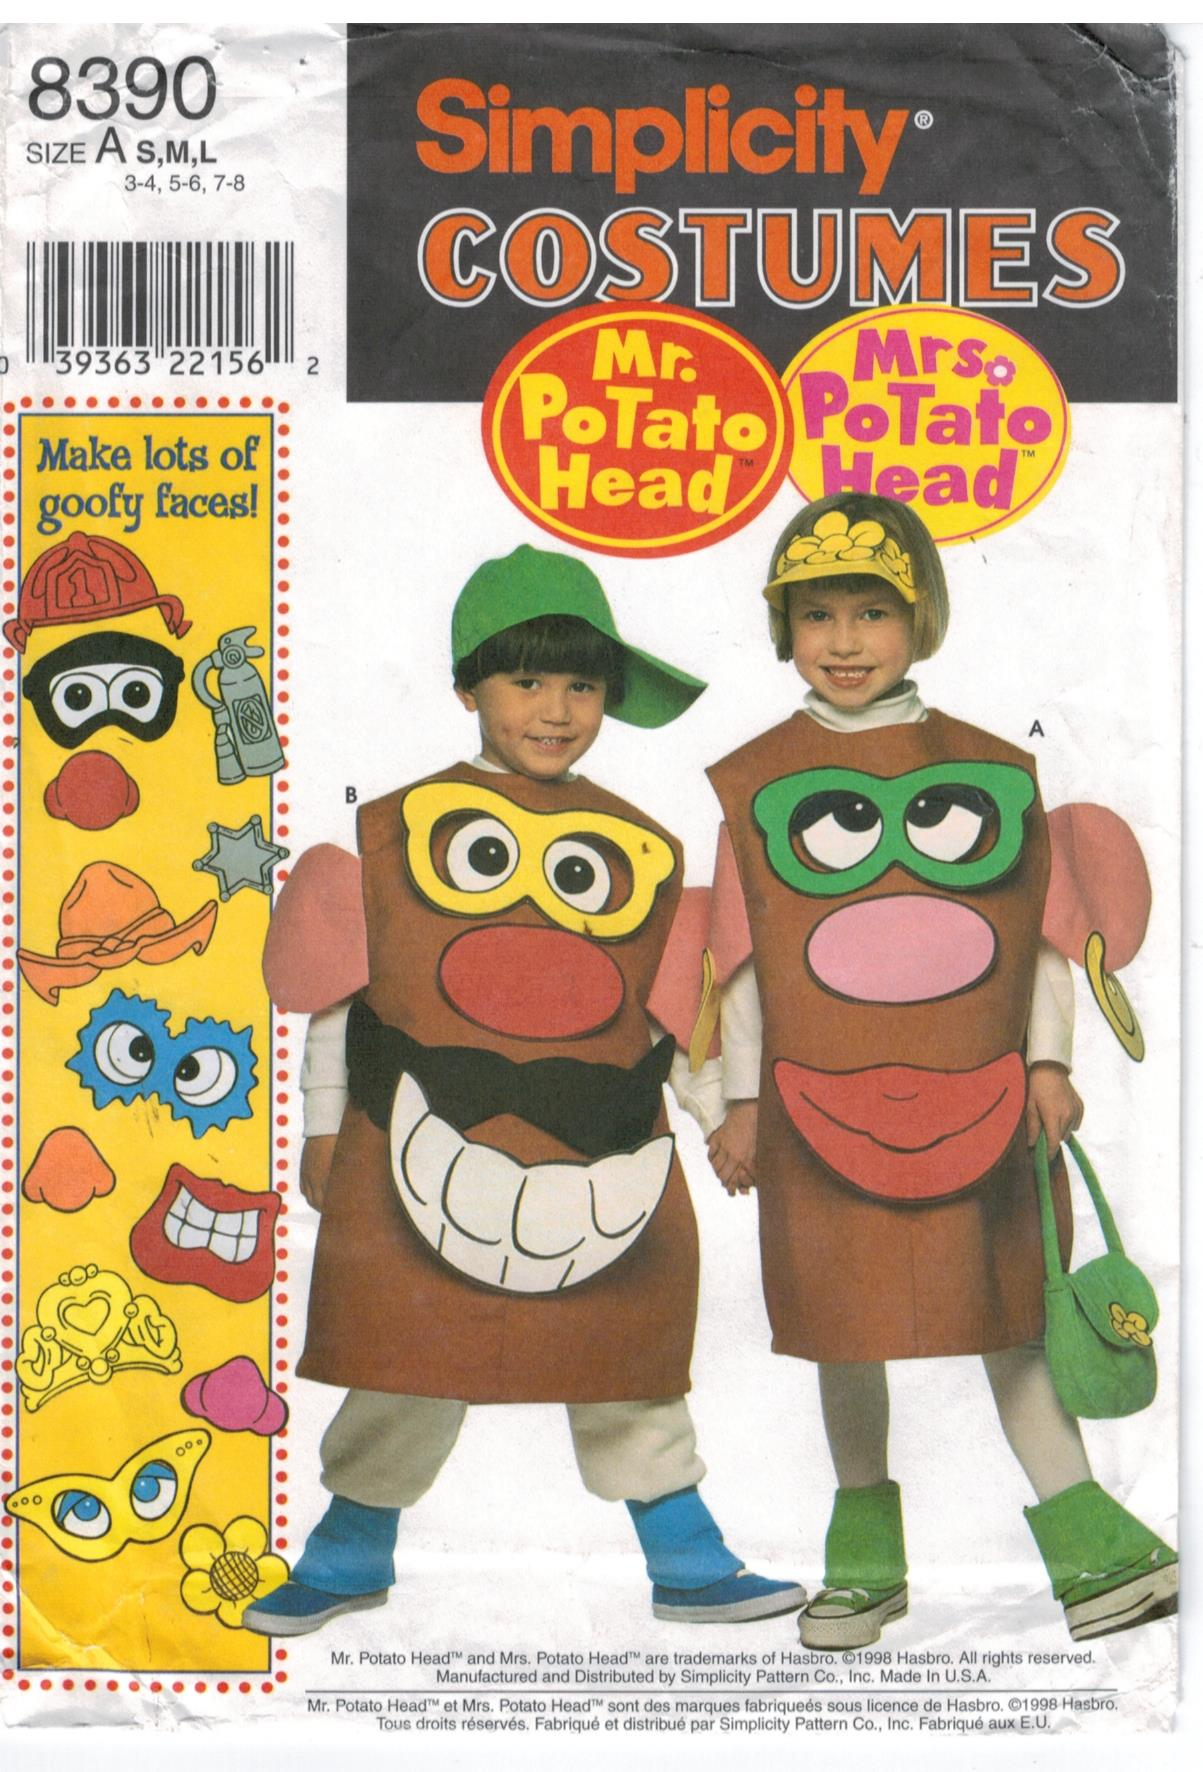 Simplicity Pattern 8390 Mr Potato Head And Mrs Potato Head Costumes For Children Sizes 3 4 Through 7 8